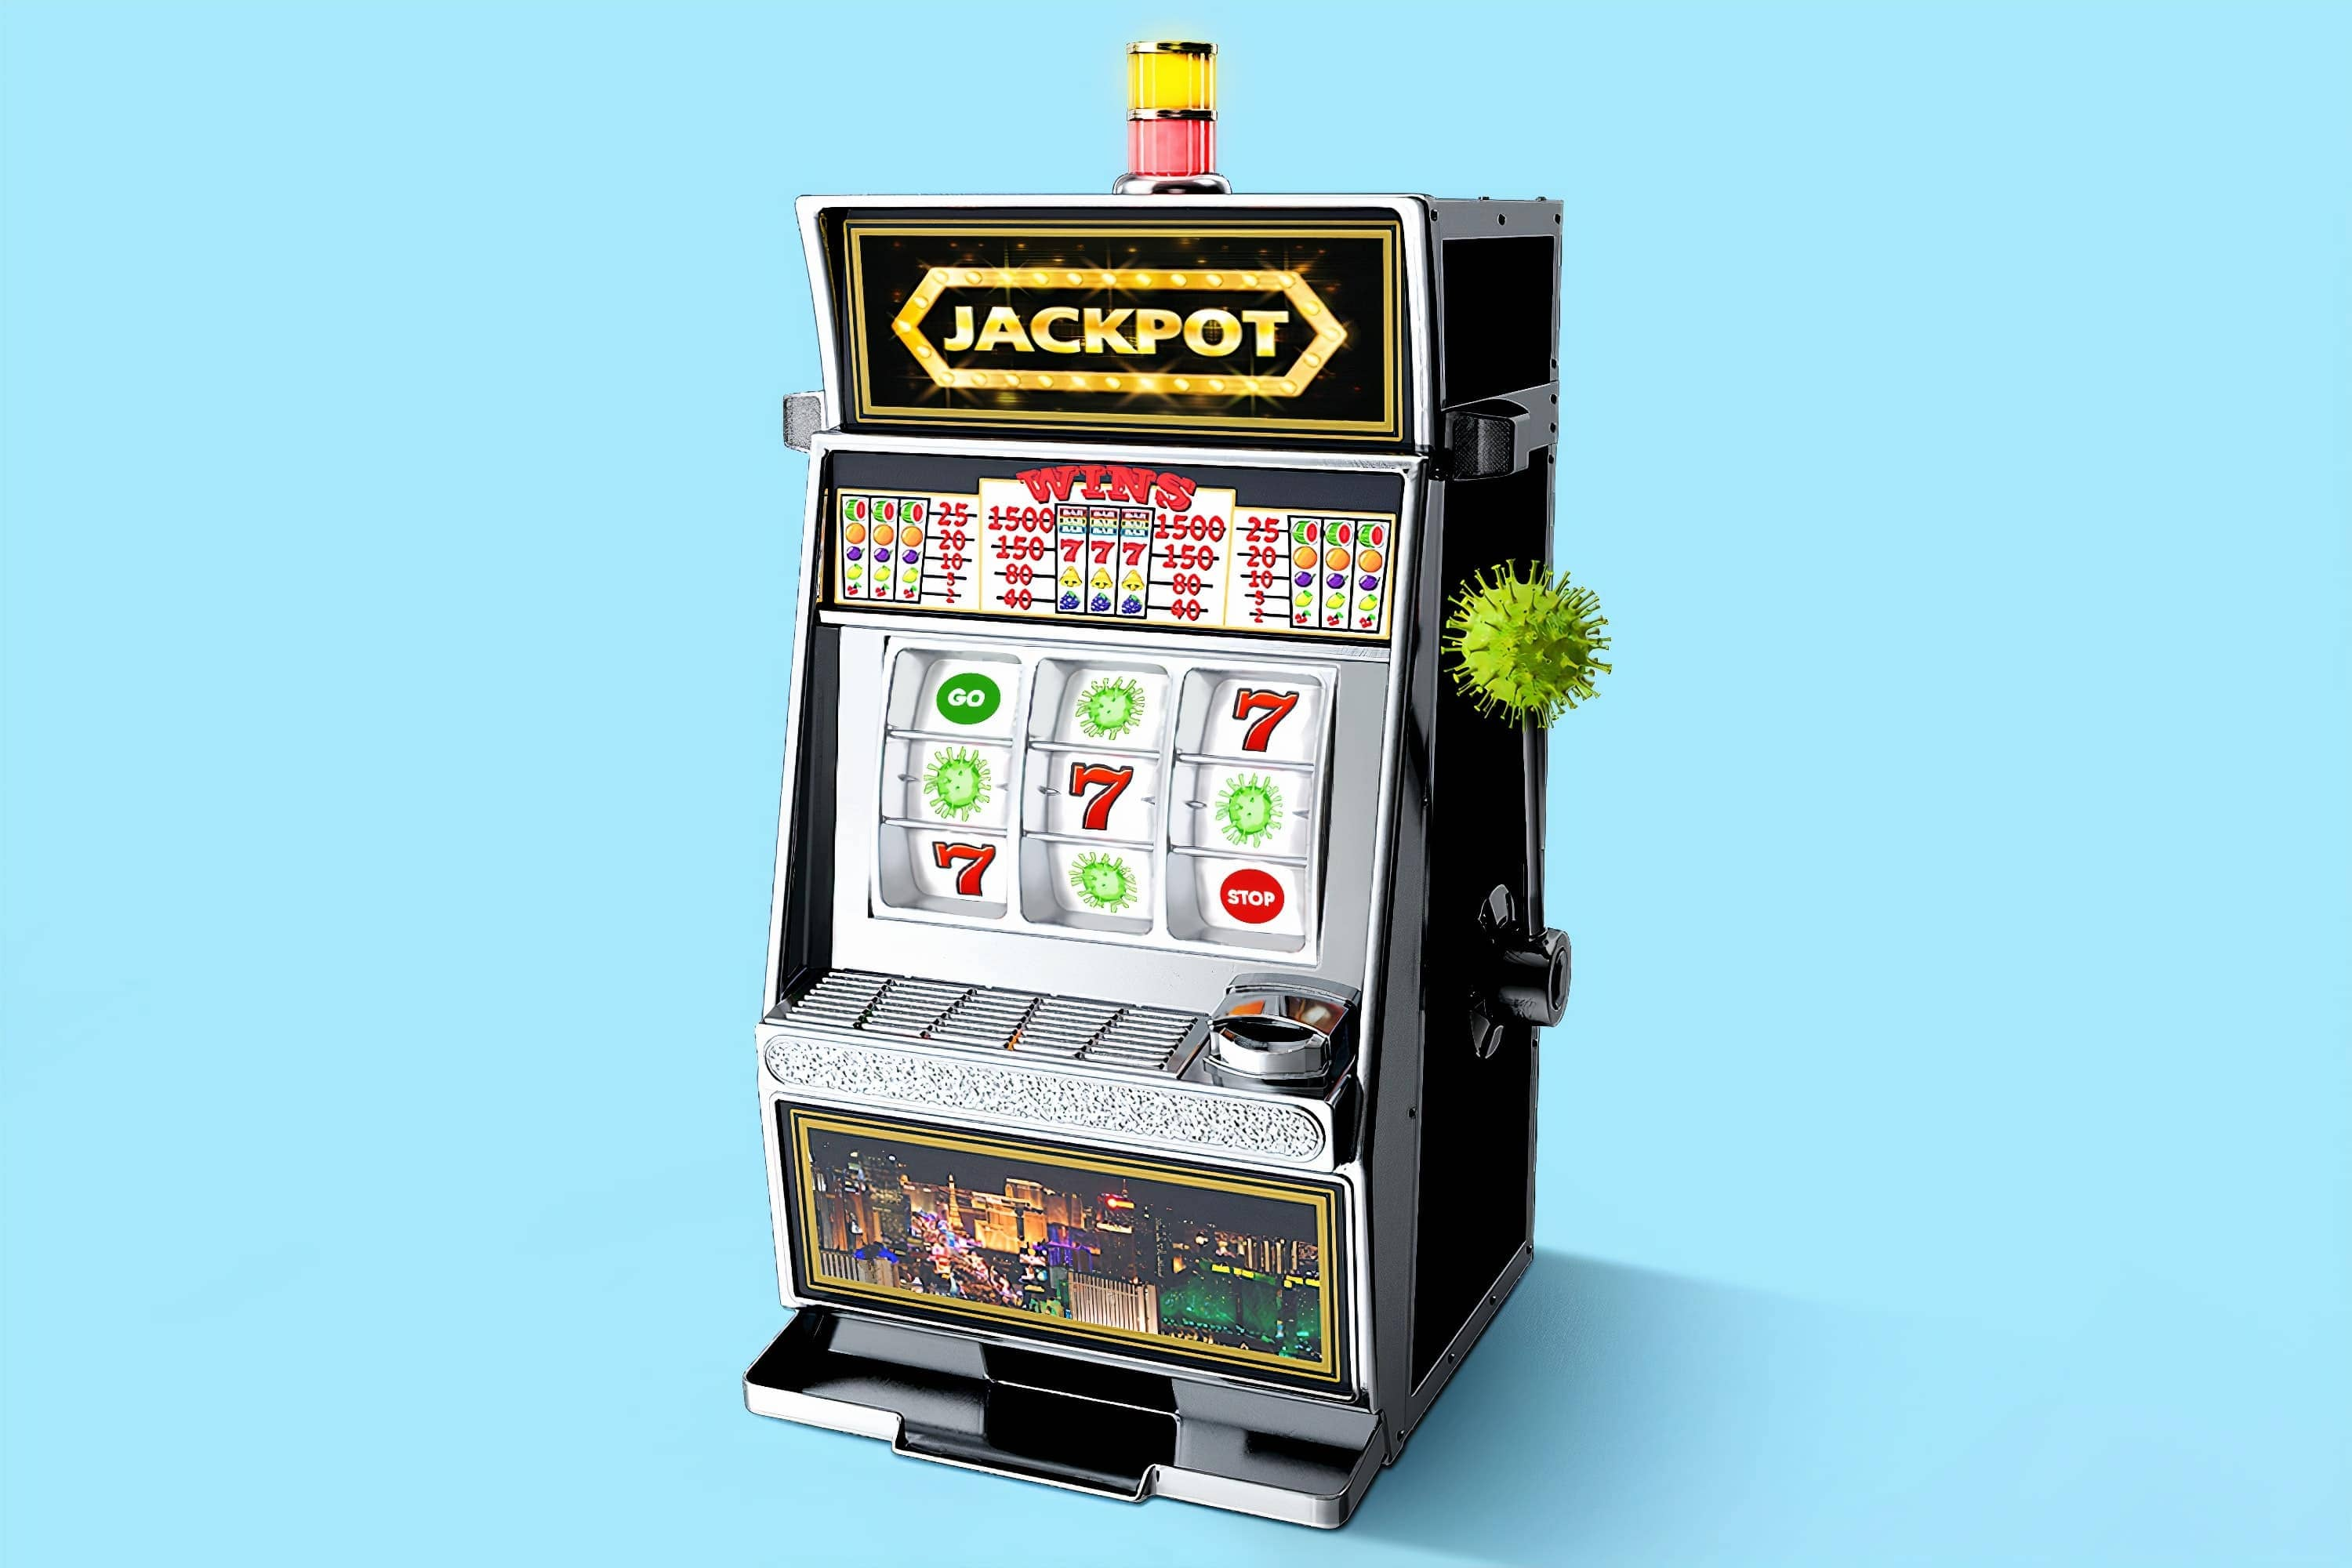 Jackpot Game Software Development